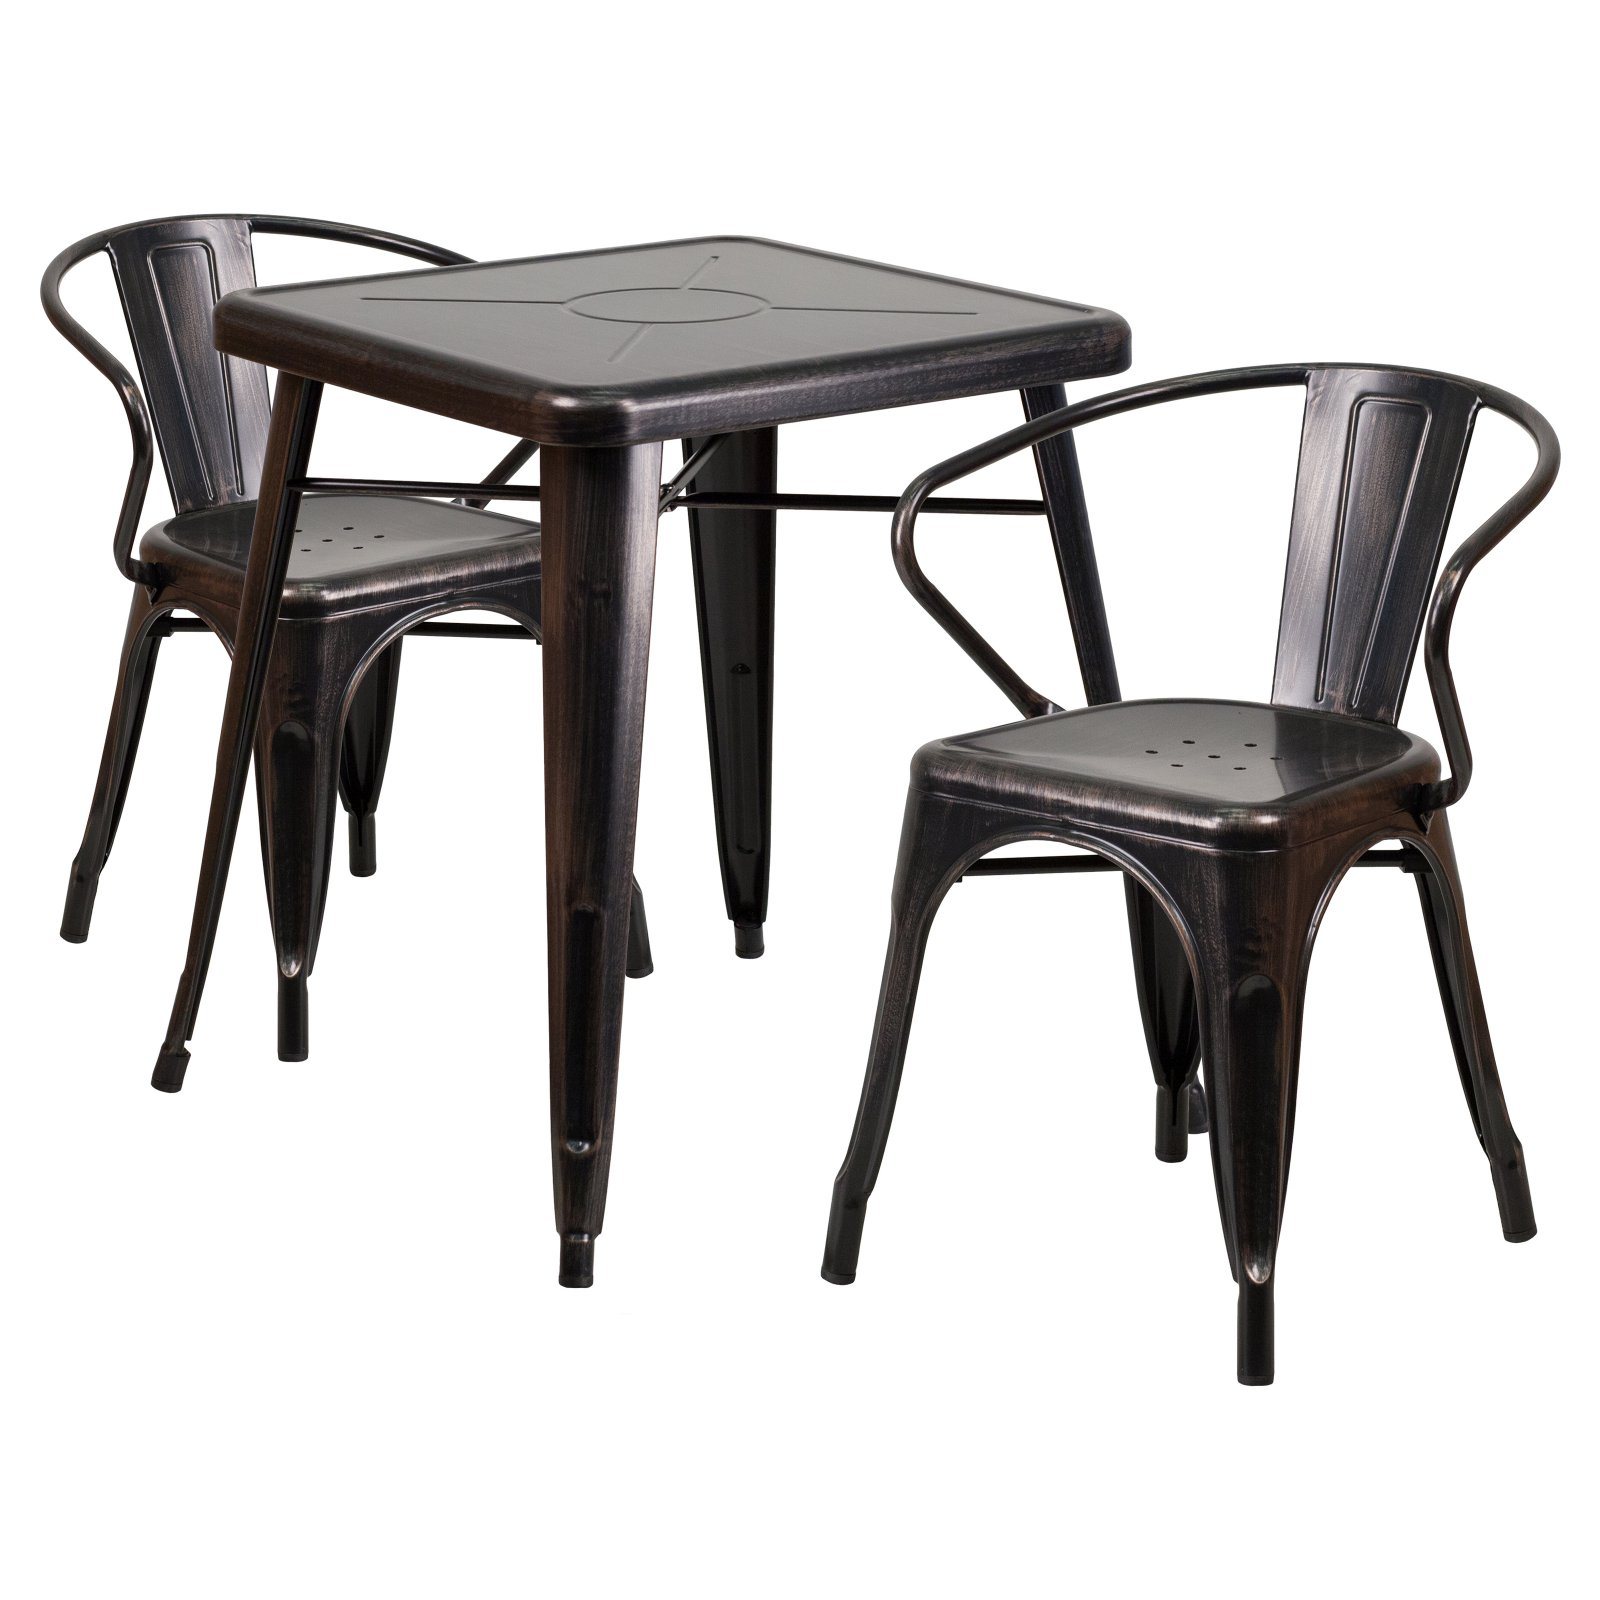 Flash Furniture 23.75'' Square Black-Antique Gold Metal Indoor-Outdoor Table Set with 2 Armchairs by Flash Furniture